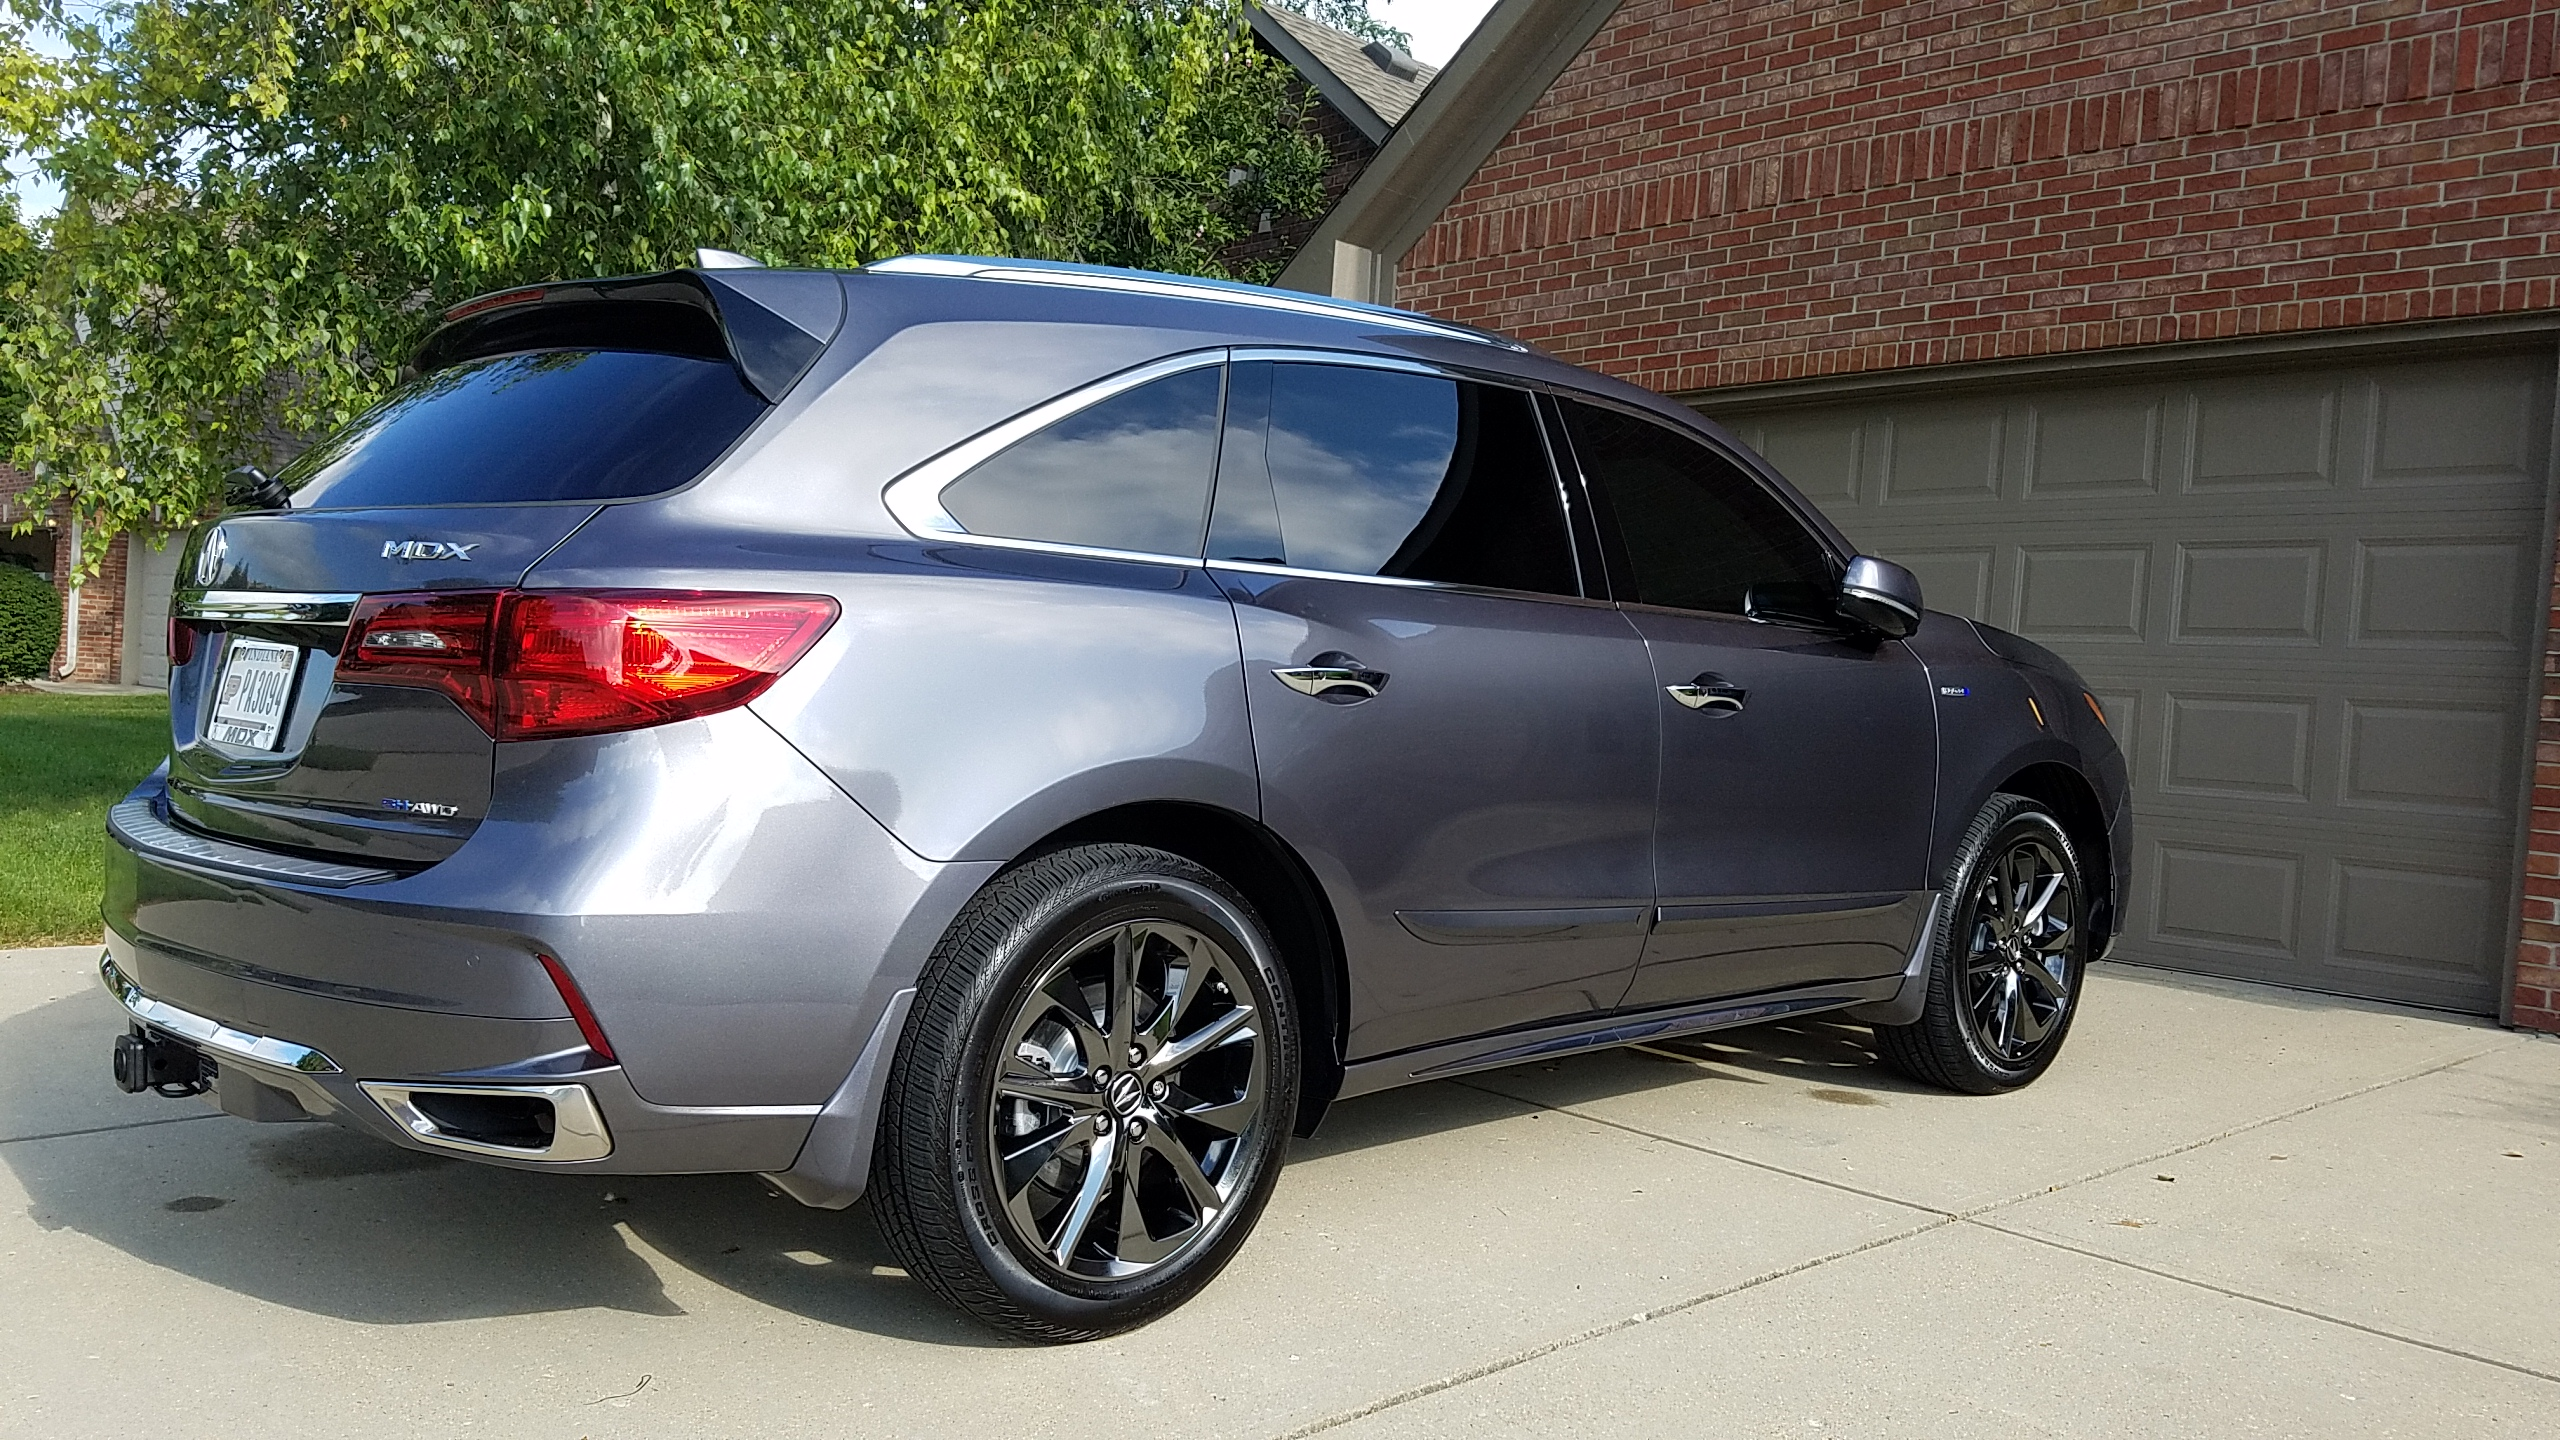 Hybrid With Tow Hitch And Painted Splash Guards Photos - 2018 acura mdx hitch